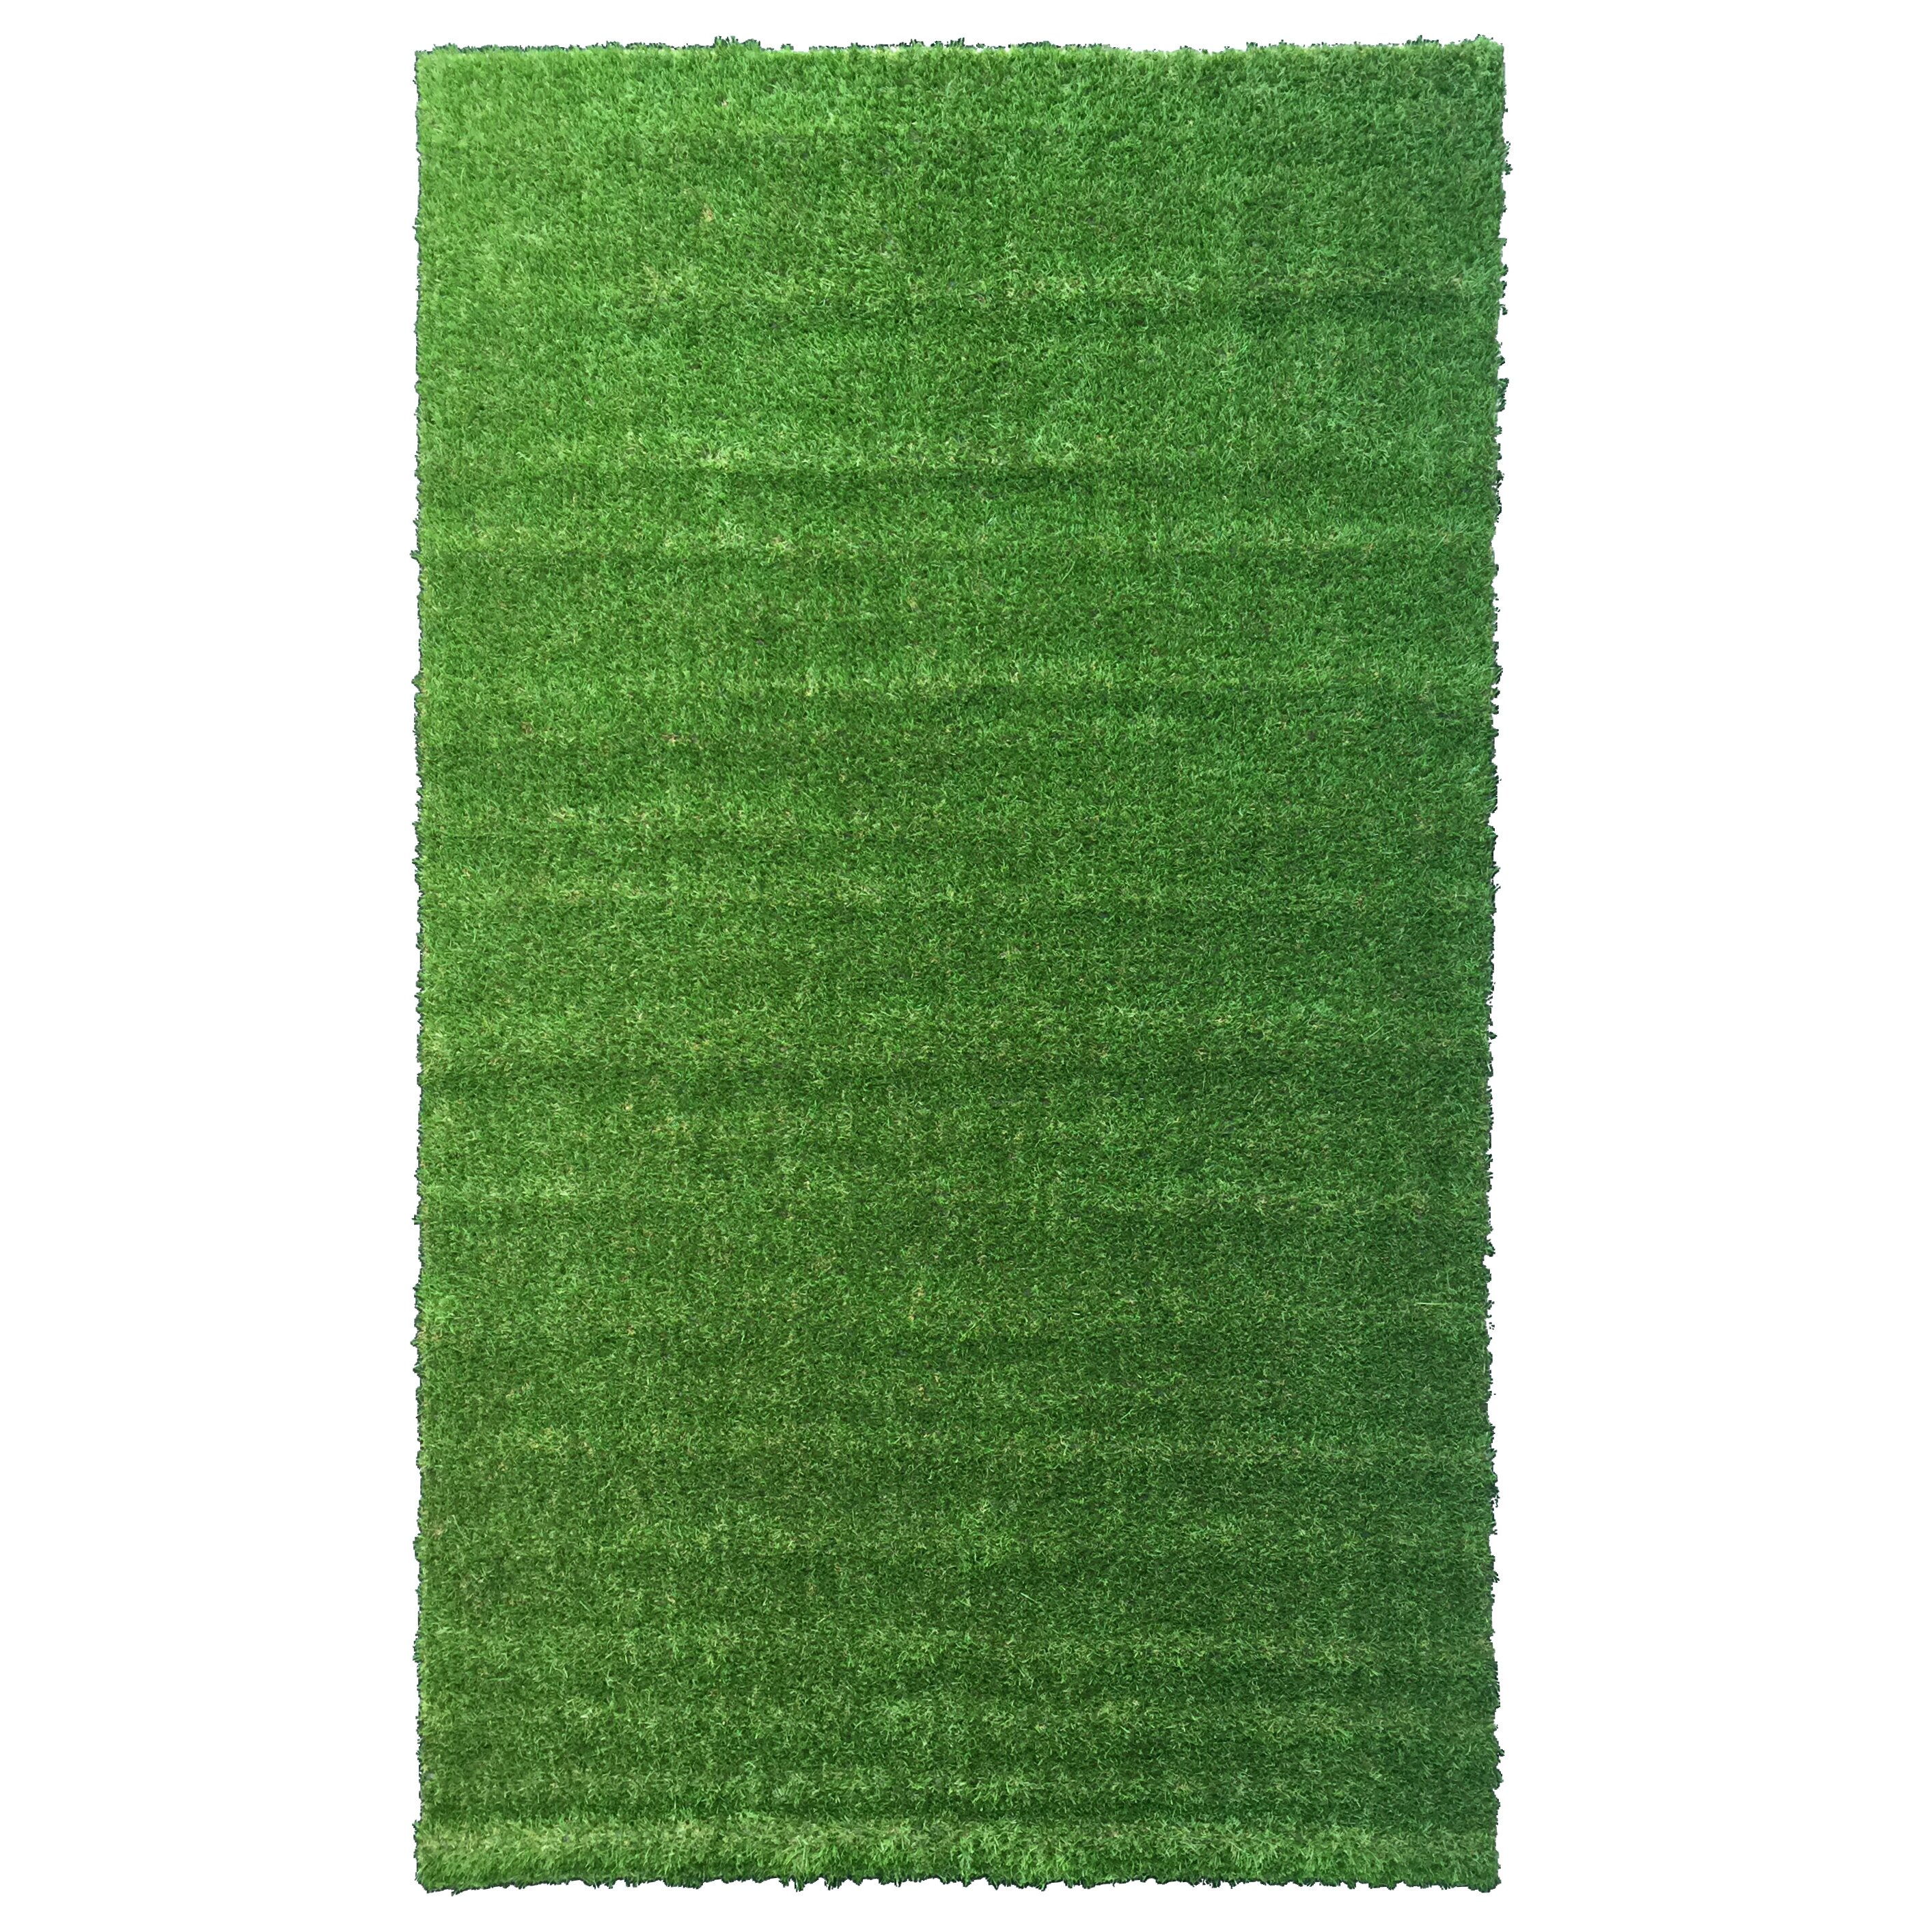 Ottomanson garden grass green indoor outdoor area rug for Indoor outdoor carpet green